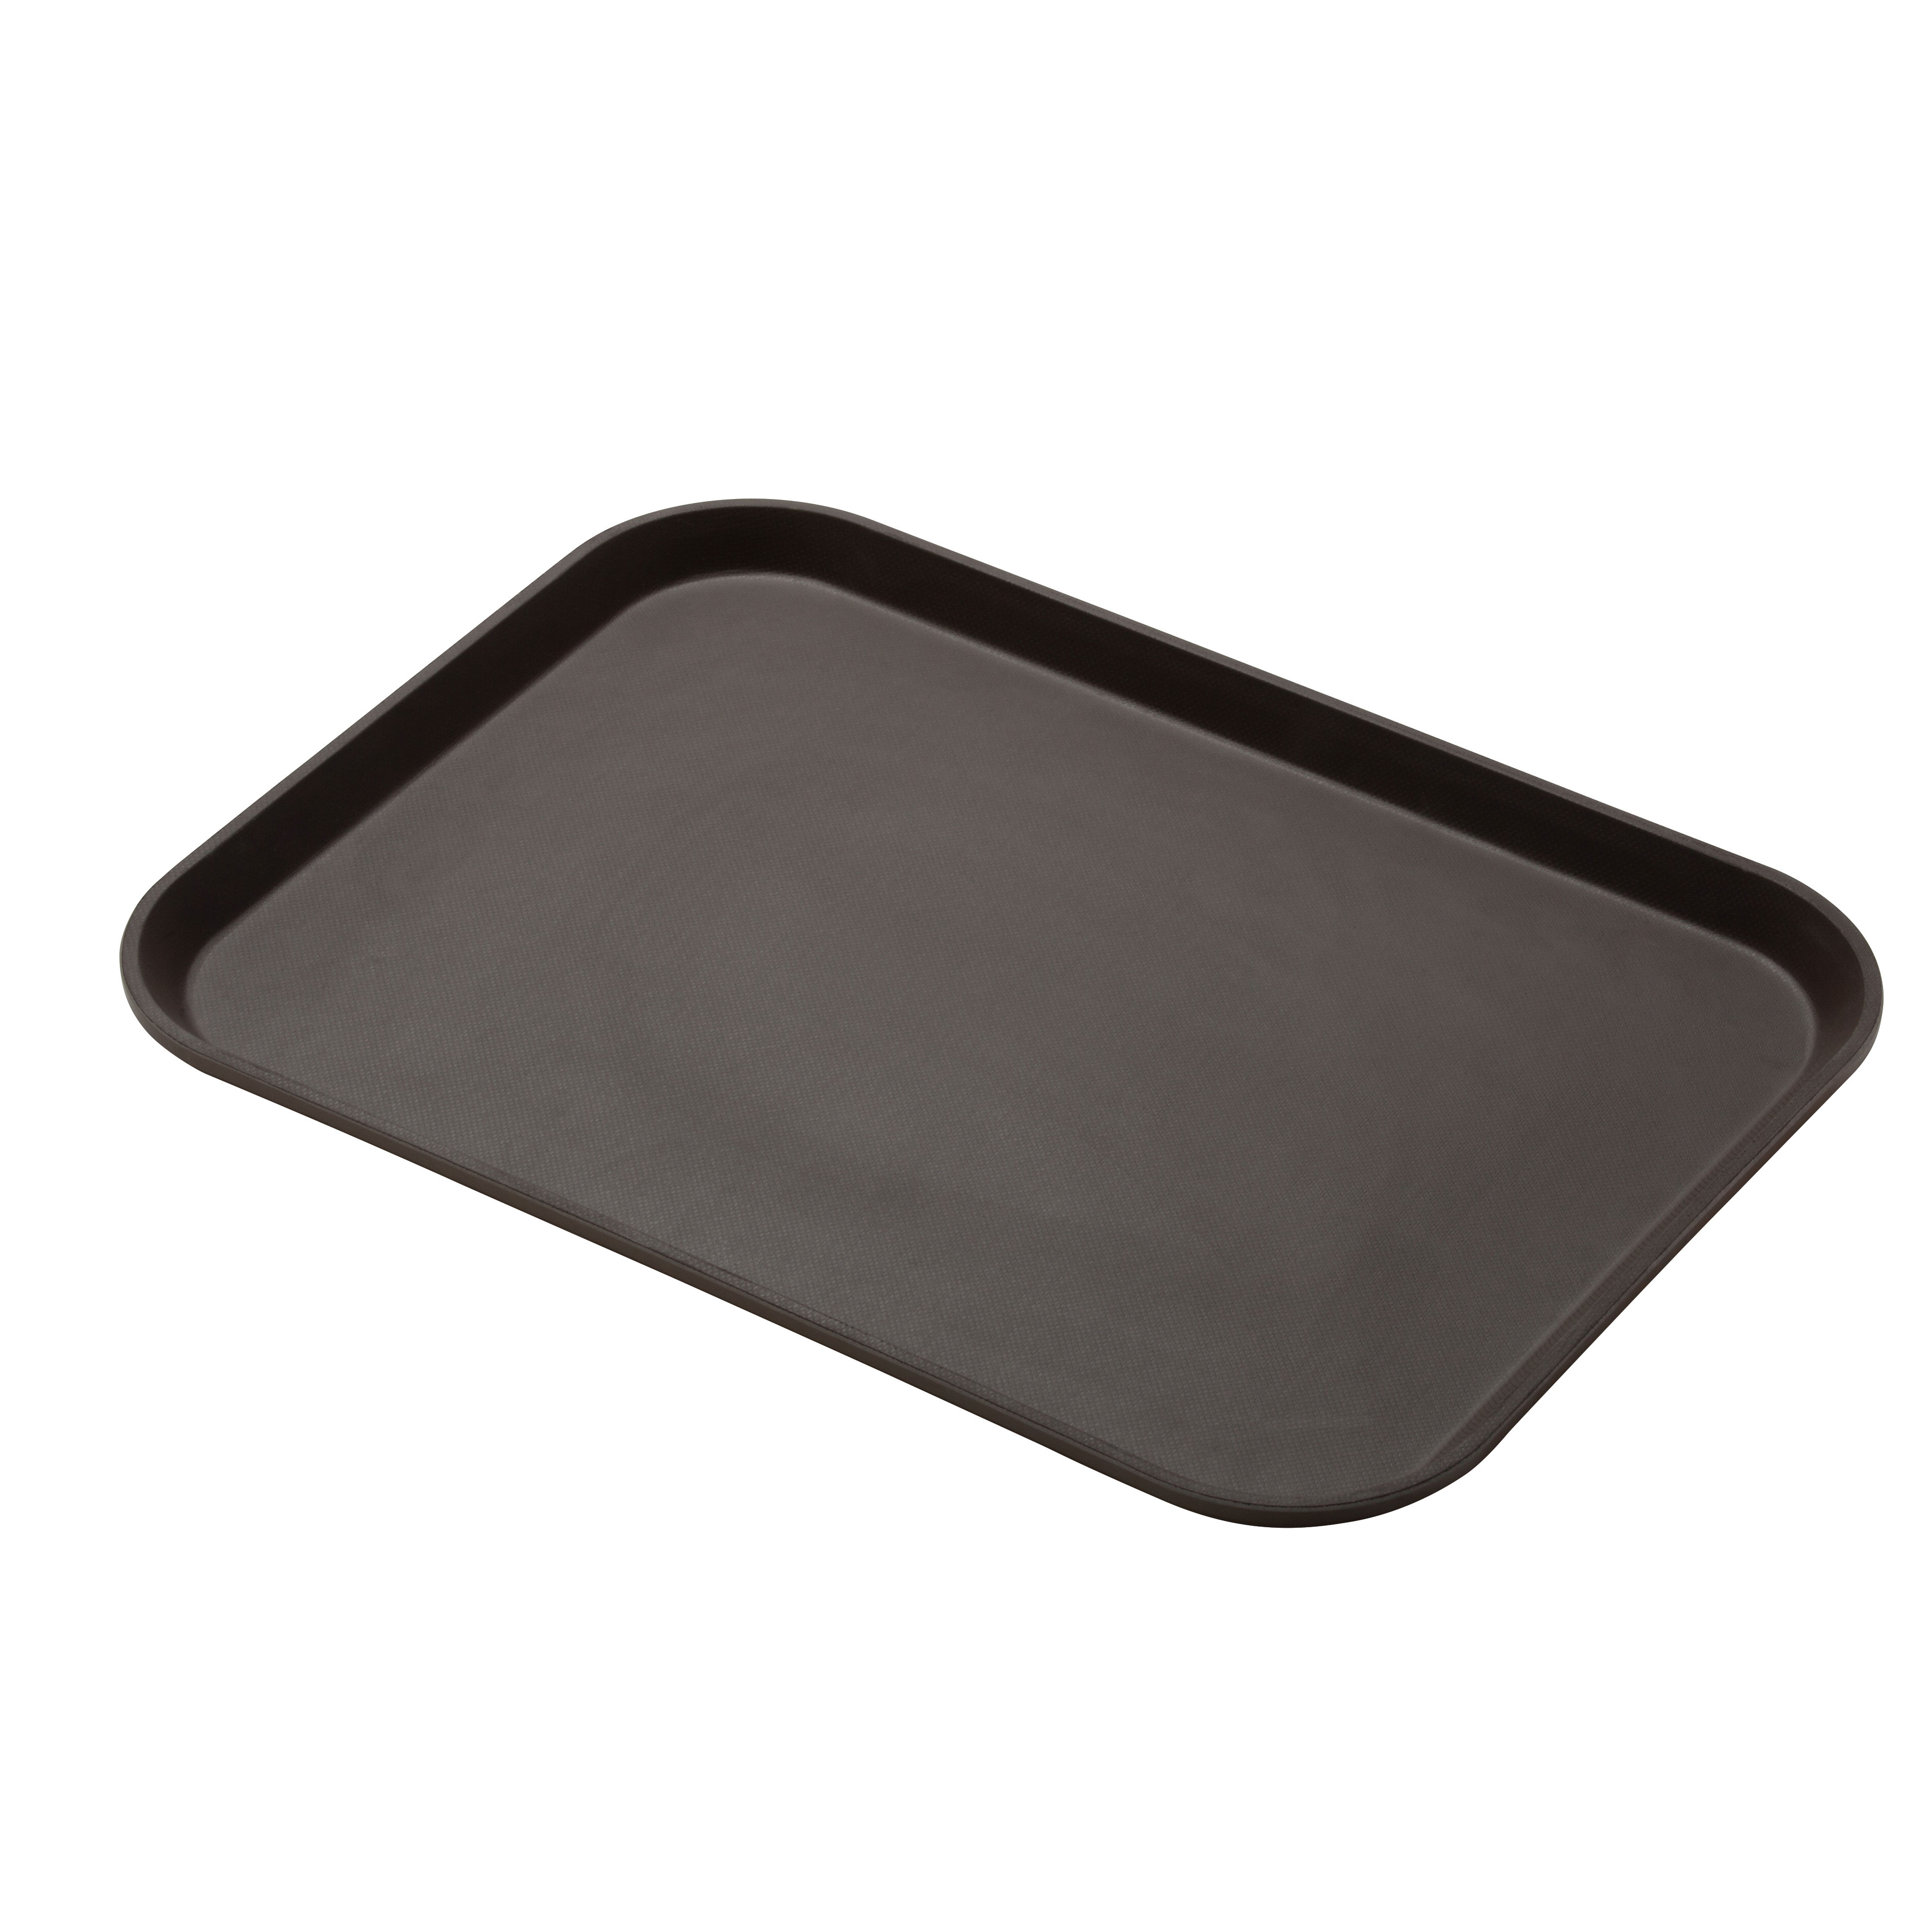 Cambro 1216CT138 serving tray, non-skid